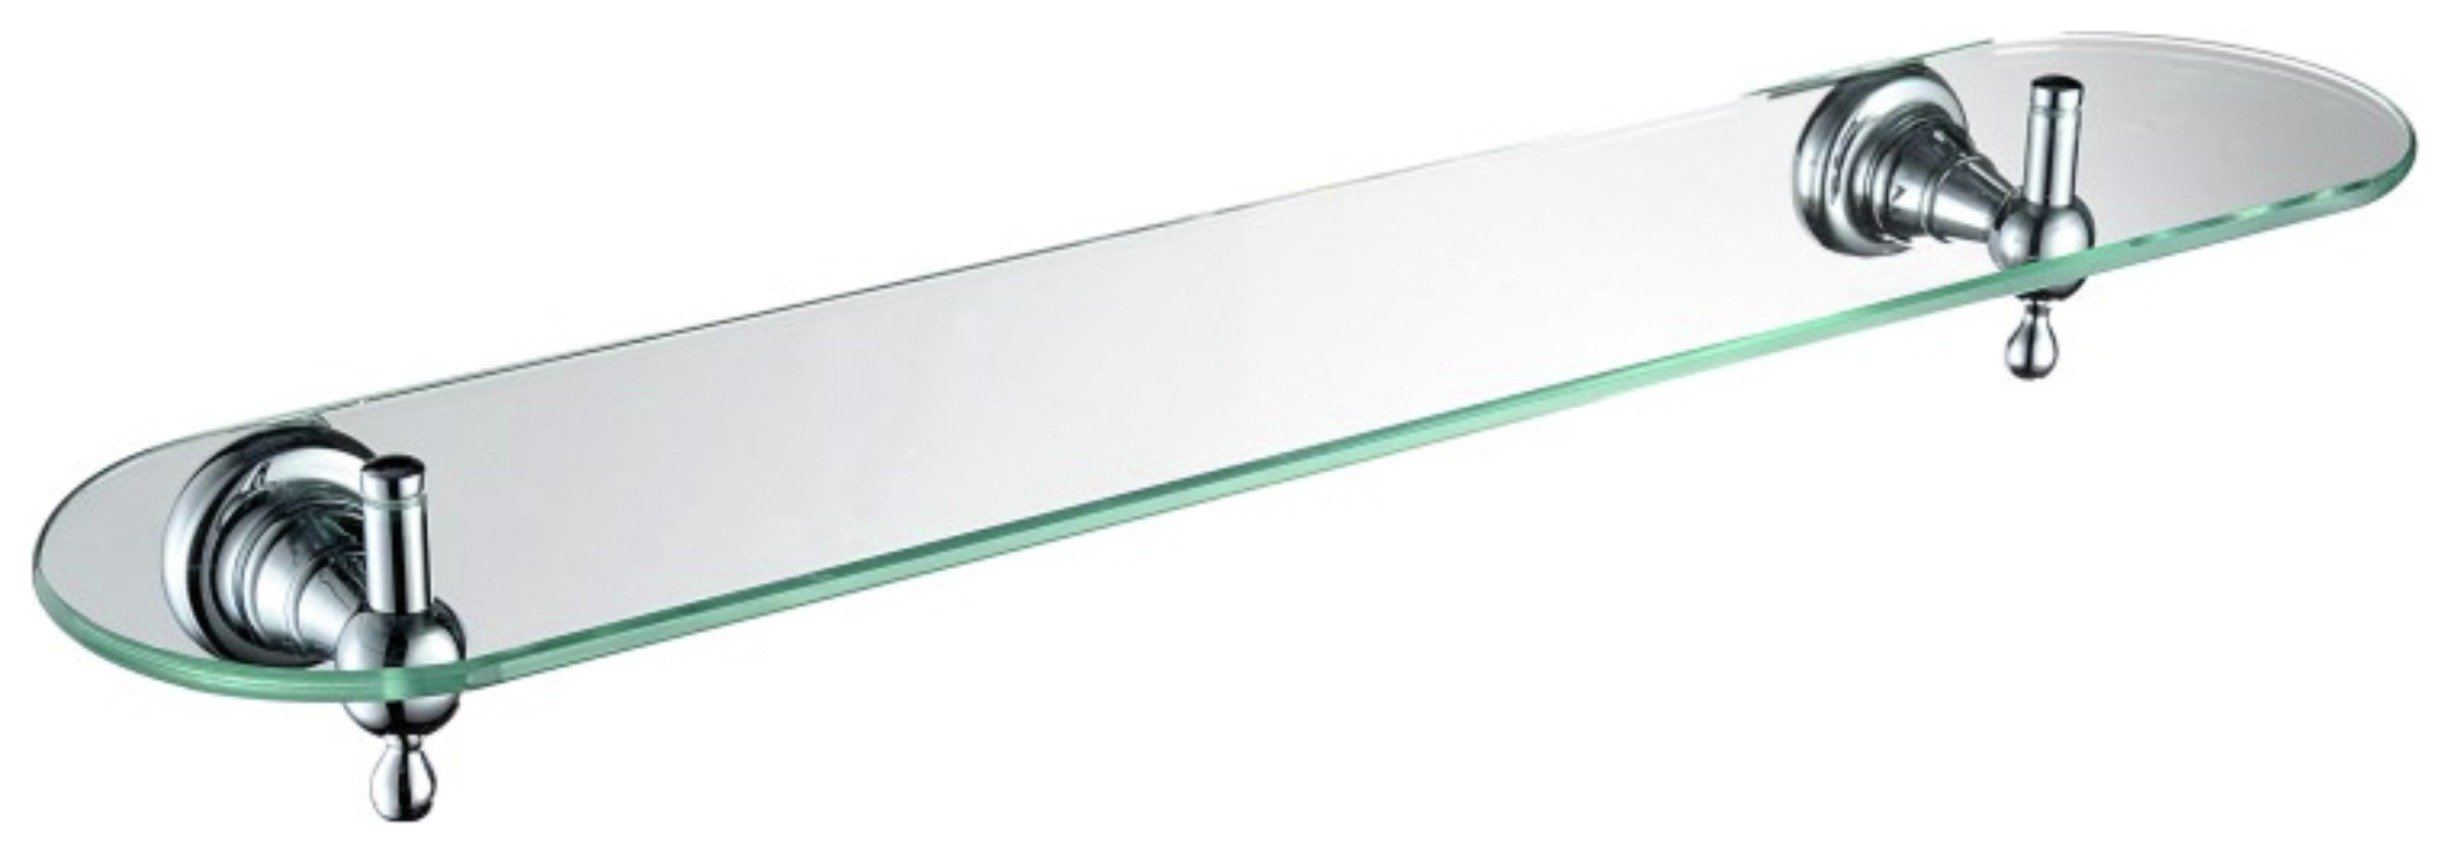 Image of Bristan 1901 Mounted Shelf - Chrome.